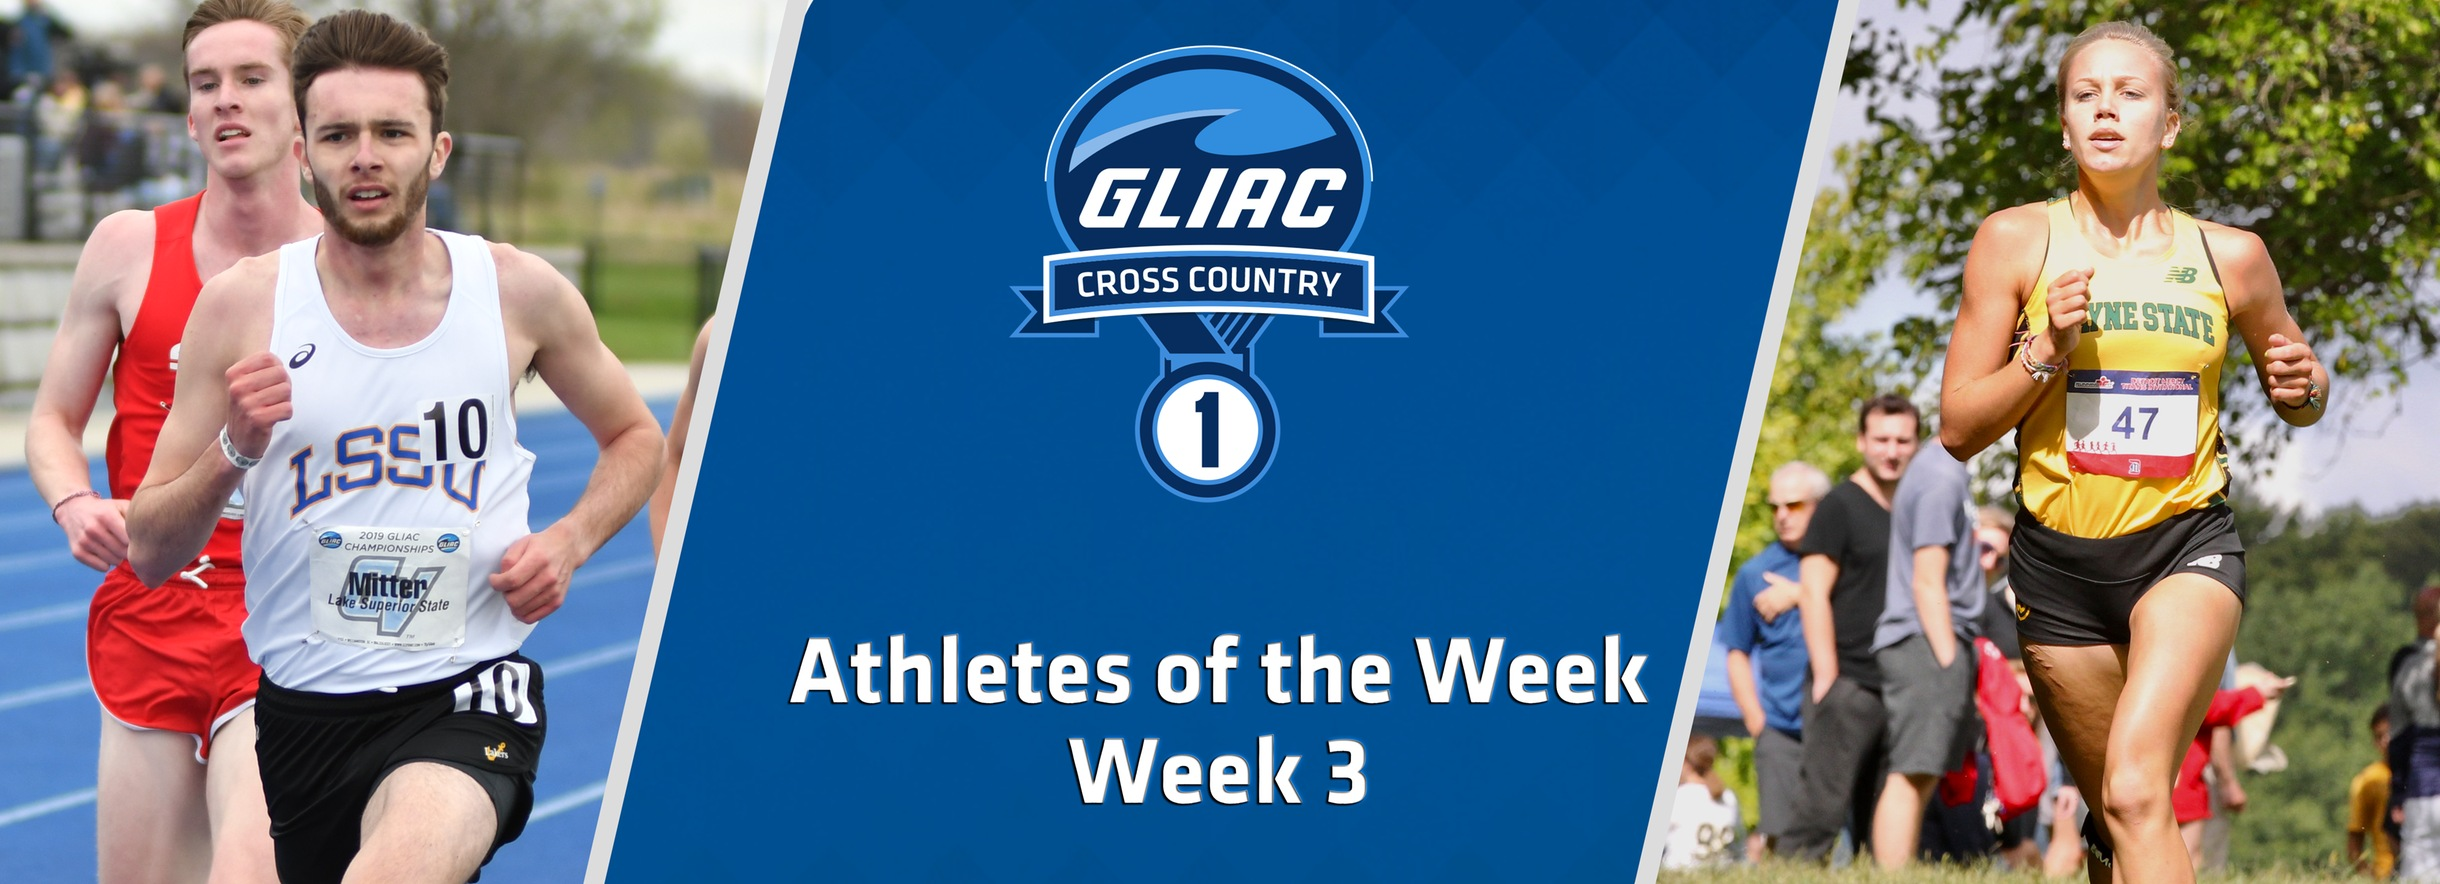 WSU's Defrain and LSSU's Mitter Earn GLIAC Cross Country Athlete of the Week Accolades